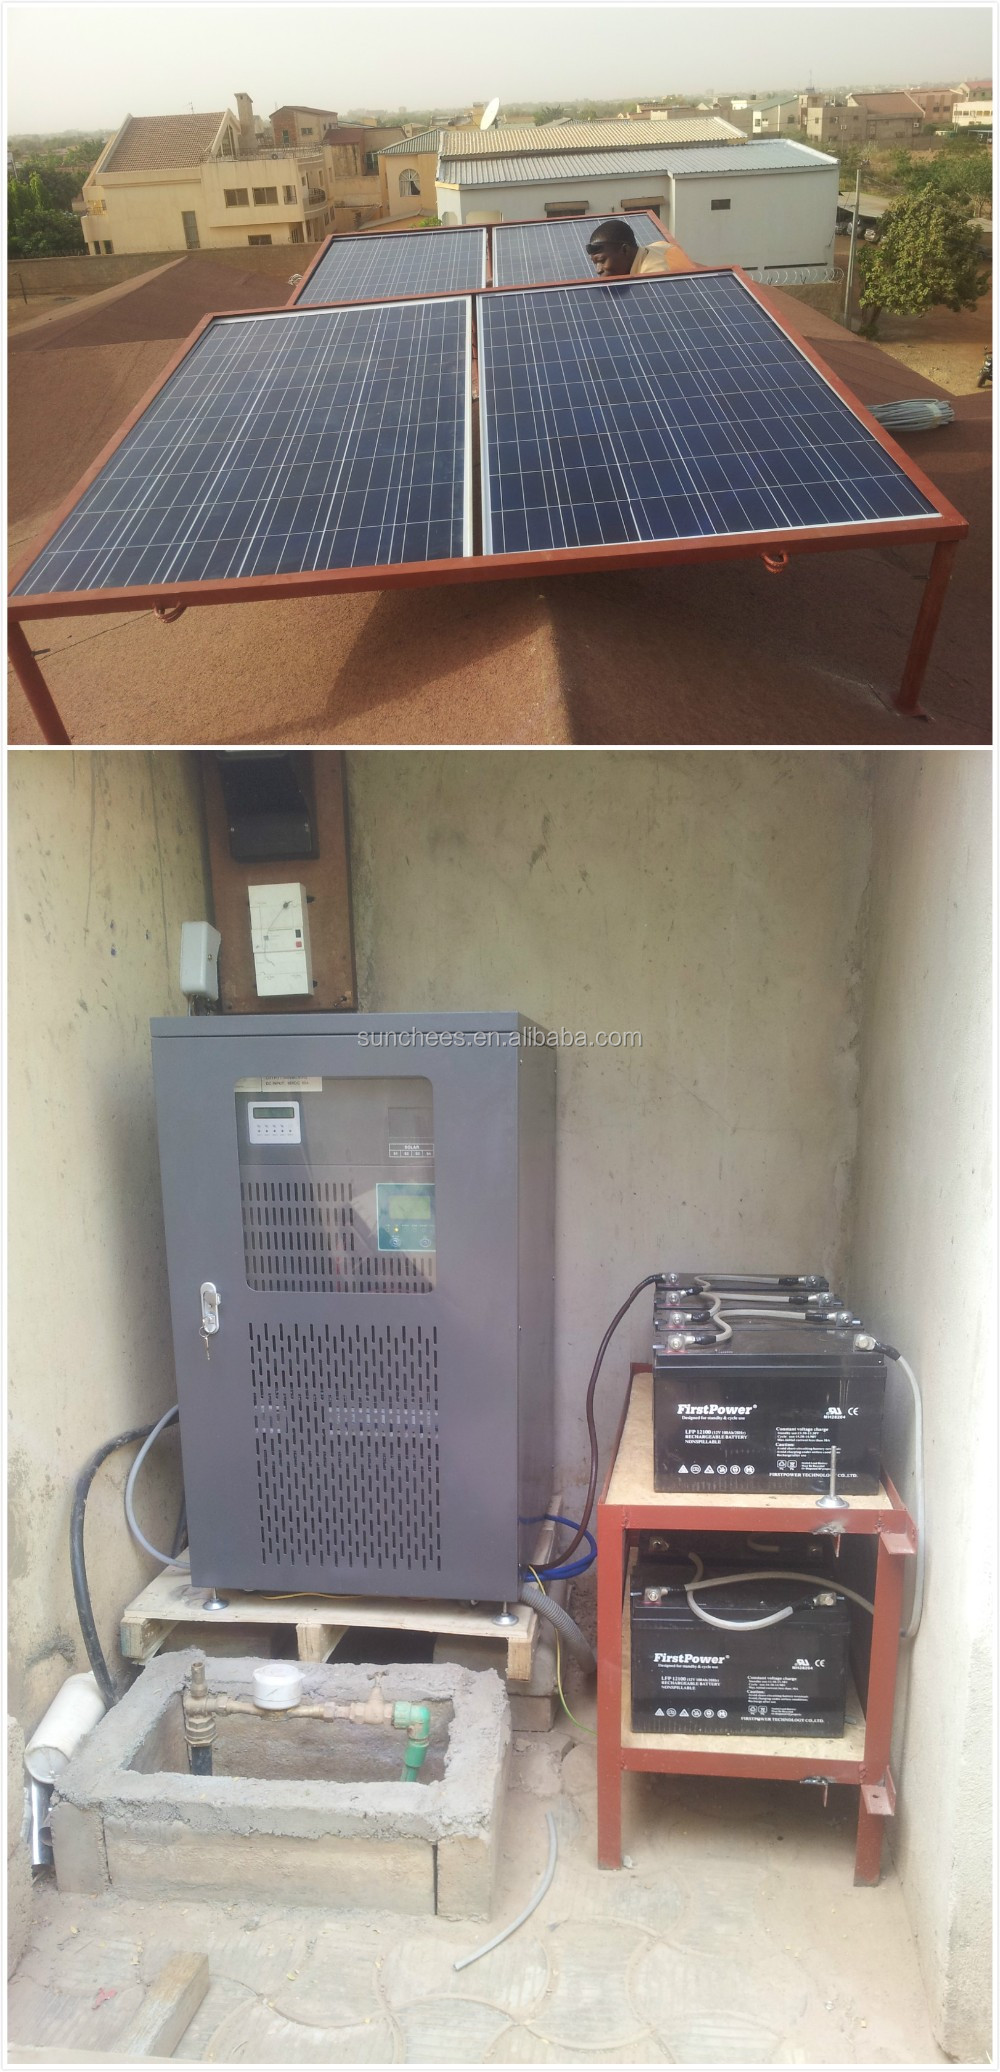 3kw Solar Panel Malaysia Price 4kw Residential Stand Alone System Wiring Power For Home